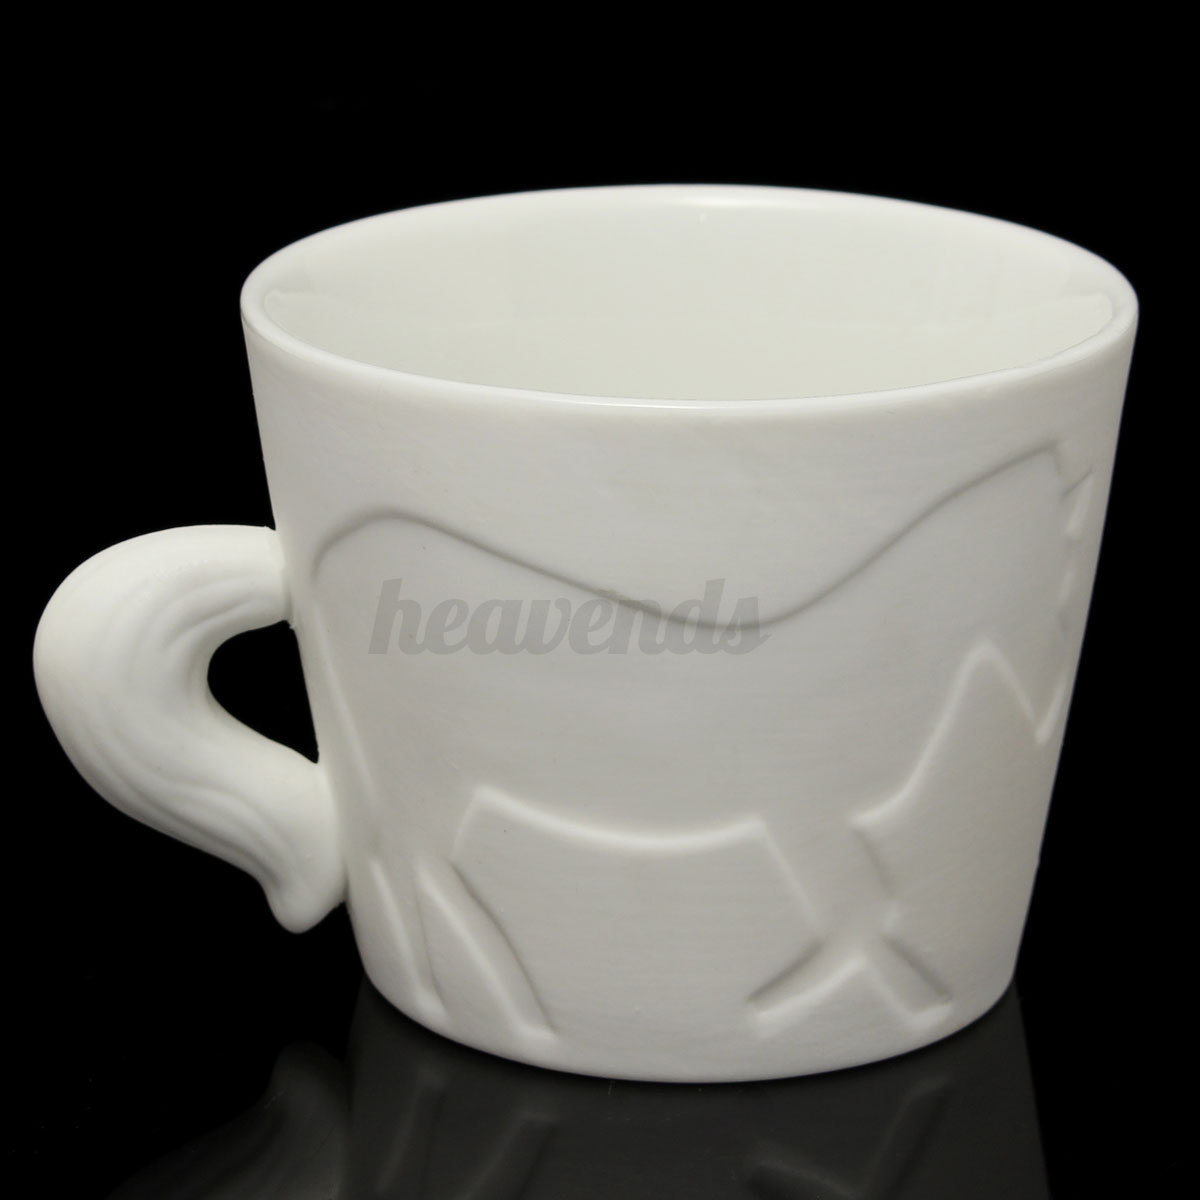 keramik teelichthalter windlicht kerzenhalter tier becher tasse kaffeebecher mug ebay. Black Bedroom Furniture Sets. Home Design Ideas